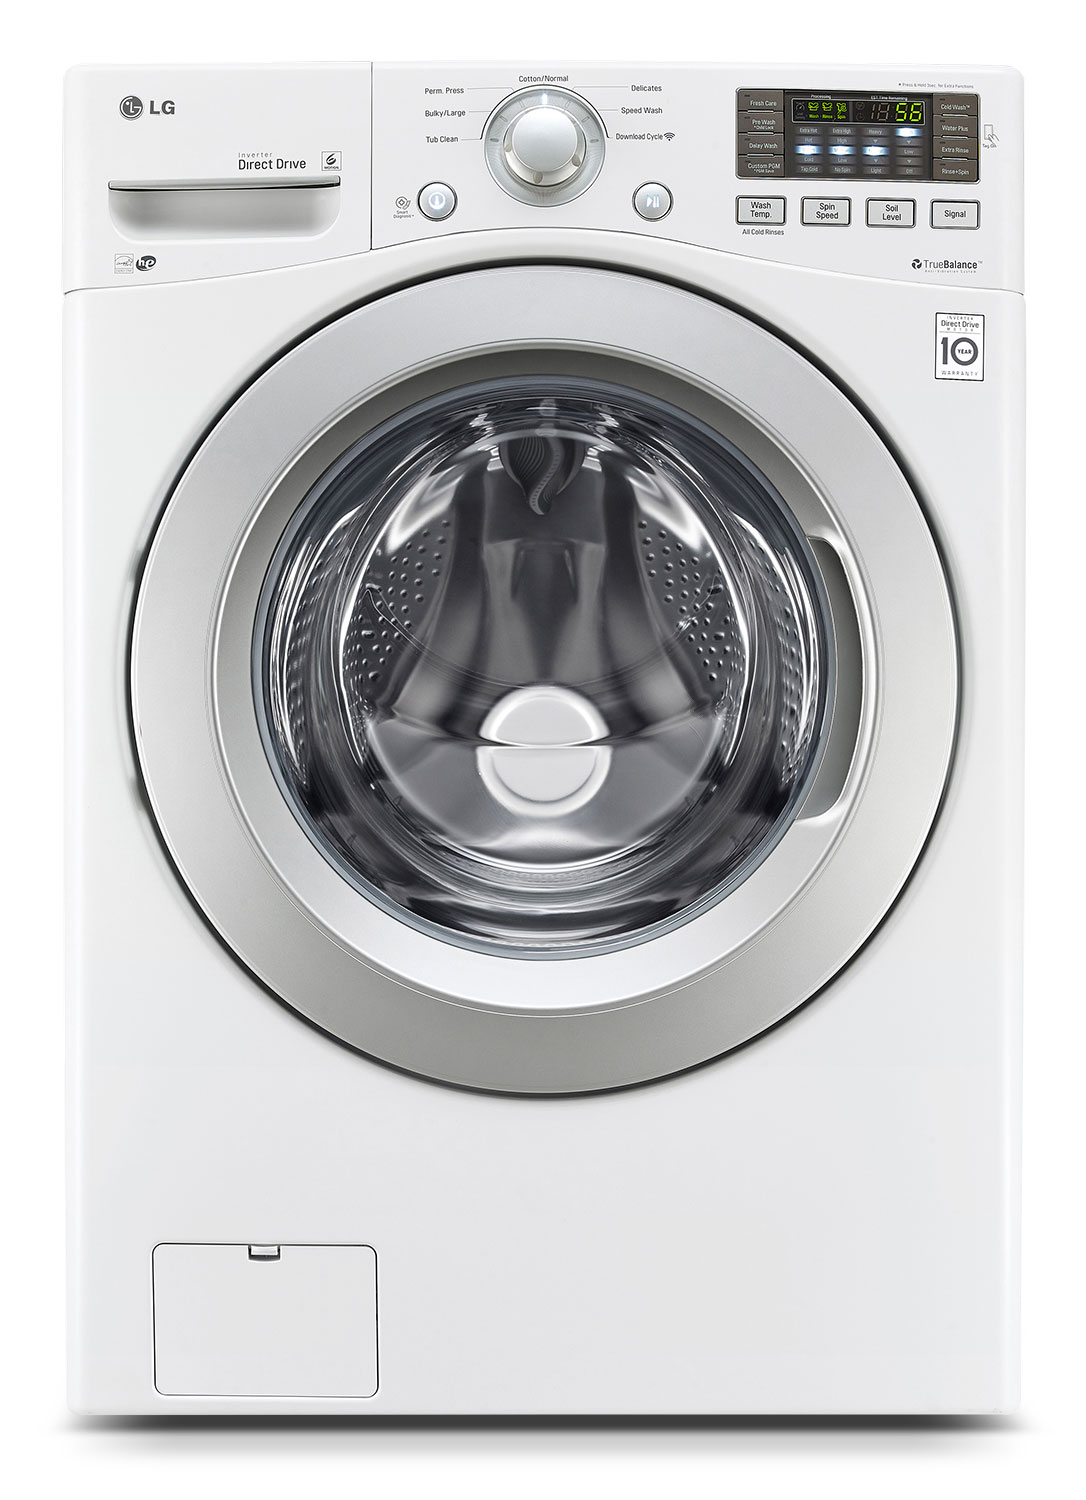 Washers and Dryers - LG Appliances White Front-Load Washer (5.2 Cu. Ft. IEC) - WM3270CW